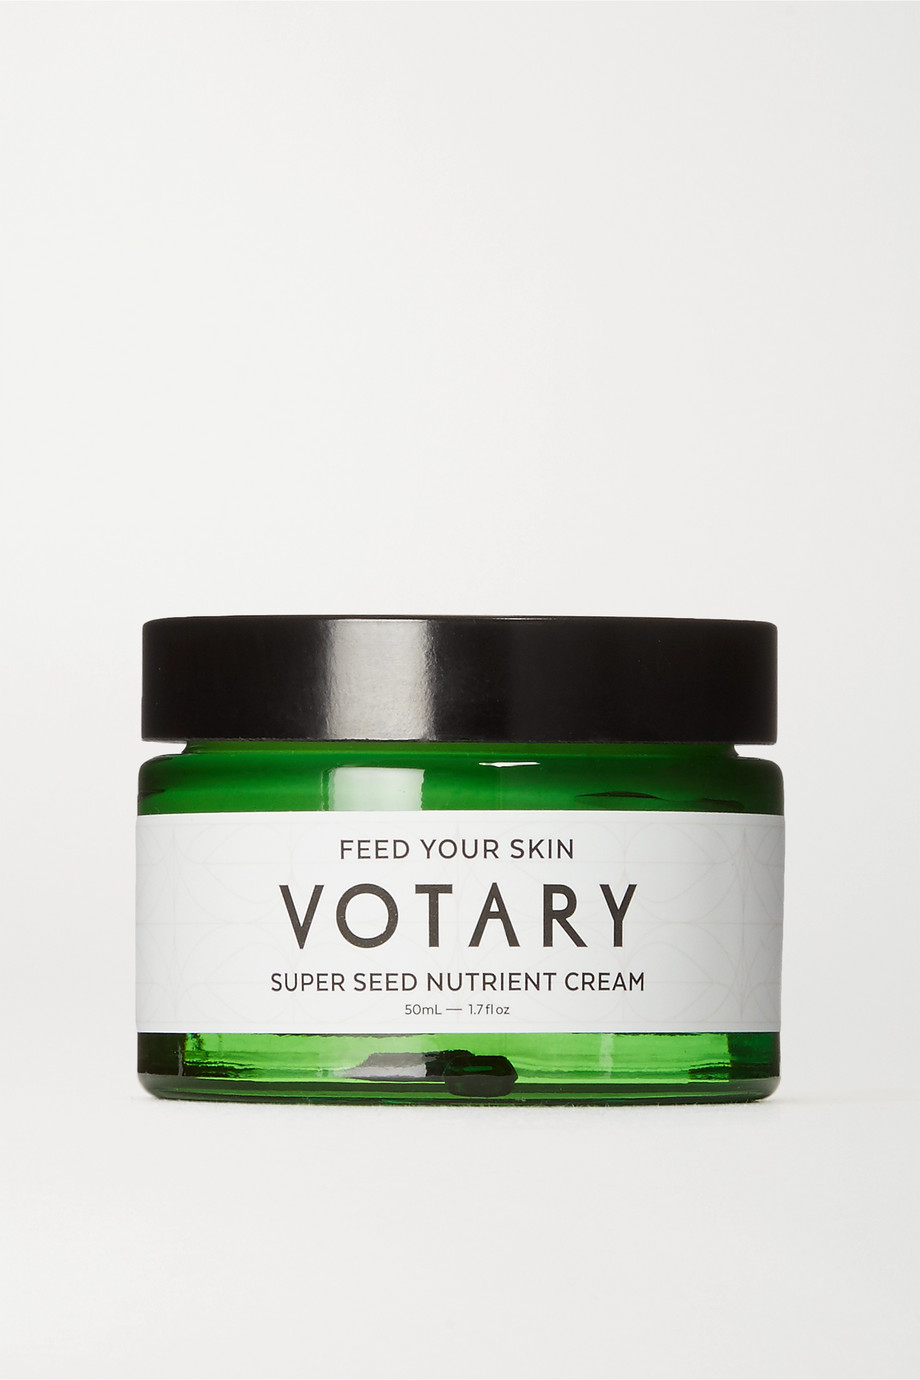 Votary Super Seed Nutrient Cream, 50ml